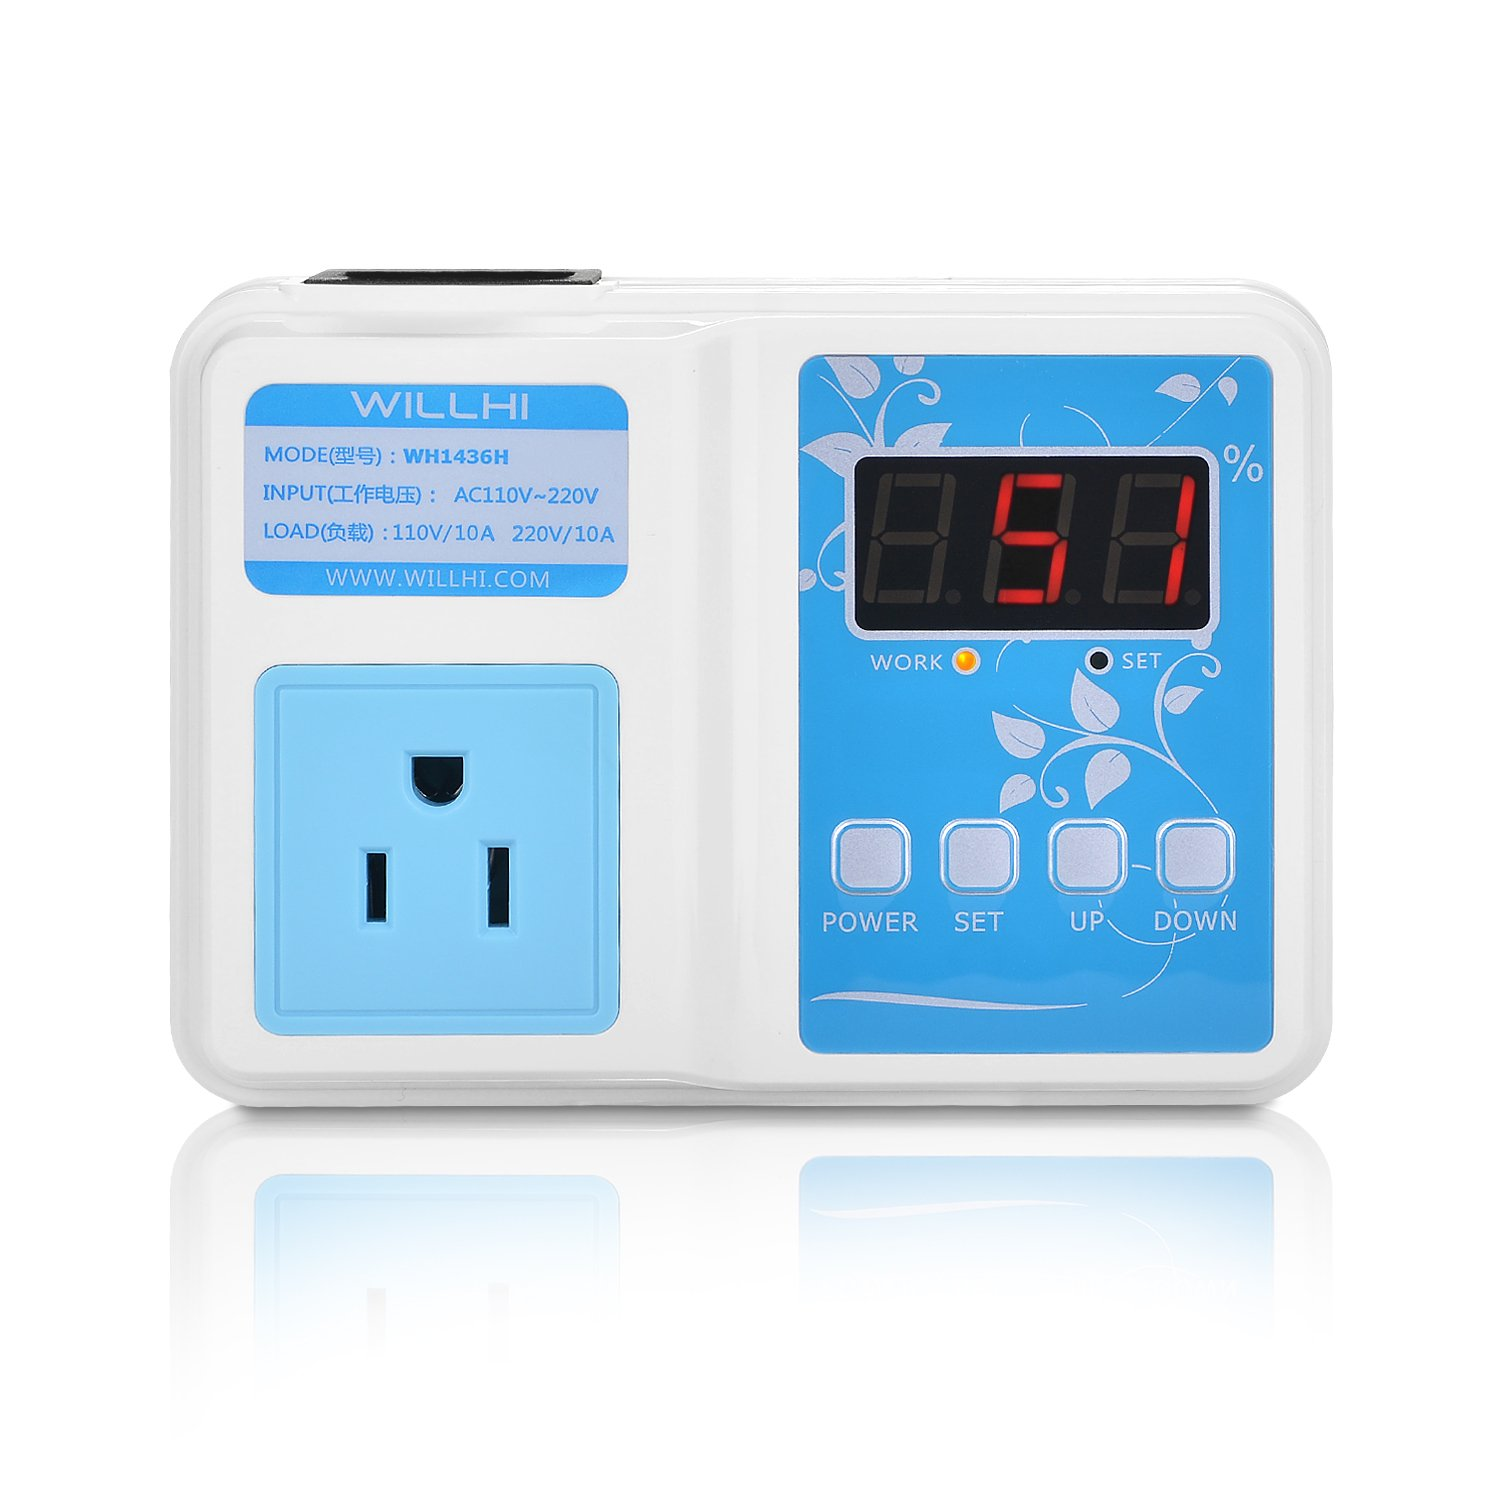 Buy Autonics Pa10 U Controller Sensor Power Amplifier Multi Timer Willhi Wh1436h 110v Digital Air Humidity With Lcd Display High Accuracy 118 Cable Humidification Mode